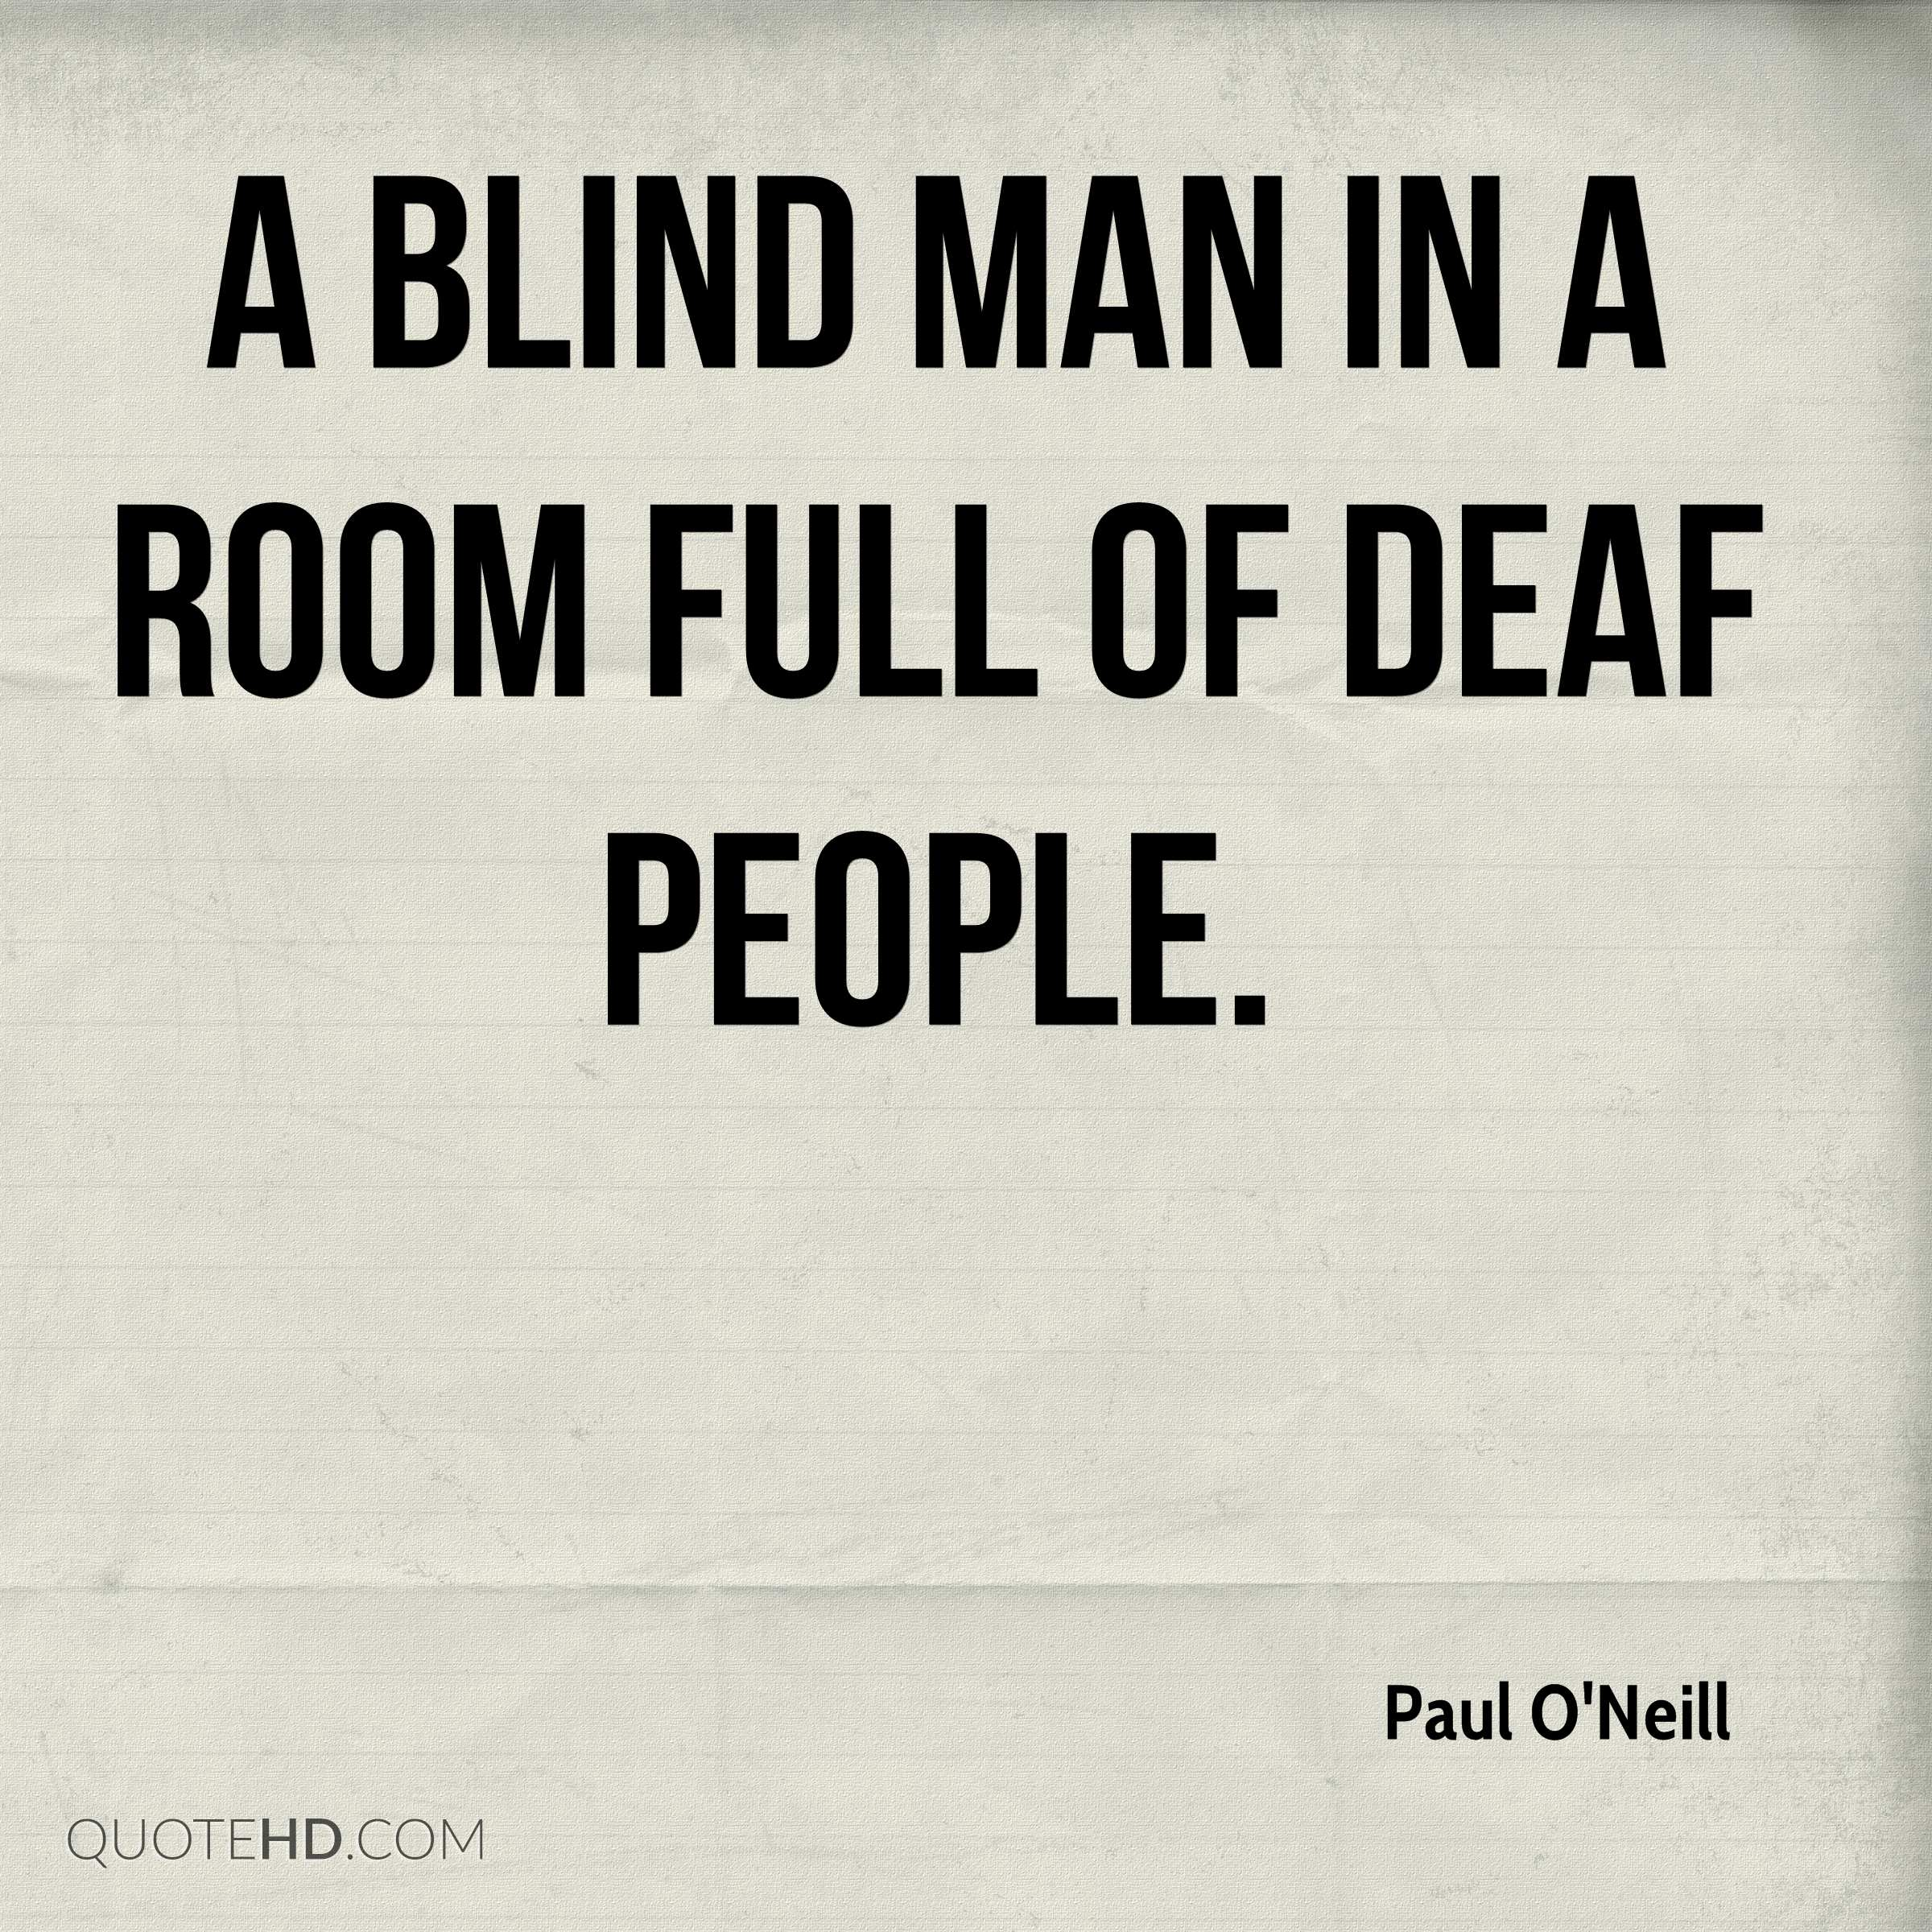 Blind Quotes Custom Paul O'neill Quotes  Quotehd